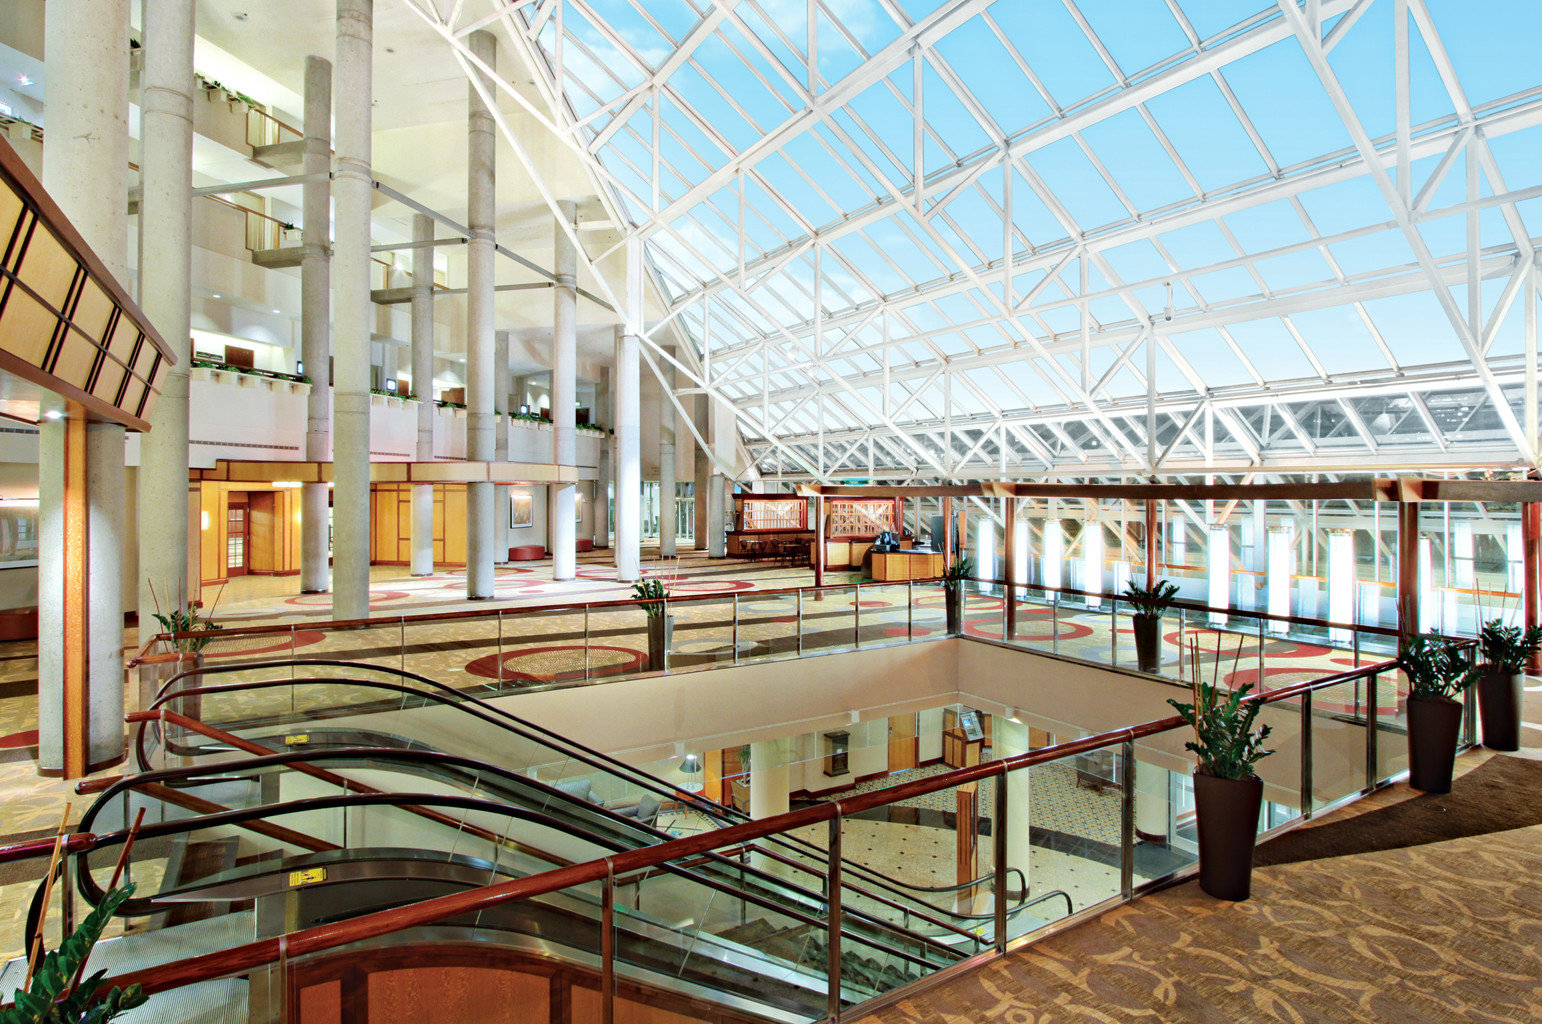 Business Modern building metal Architecture plaza public library shopping mall headquarters convention center